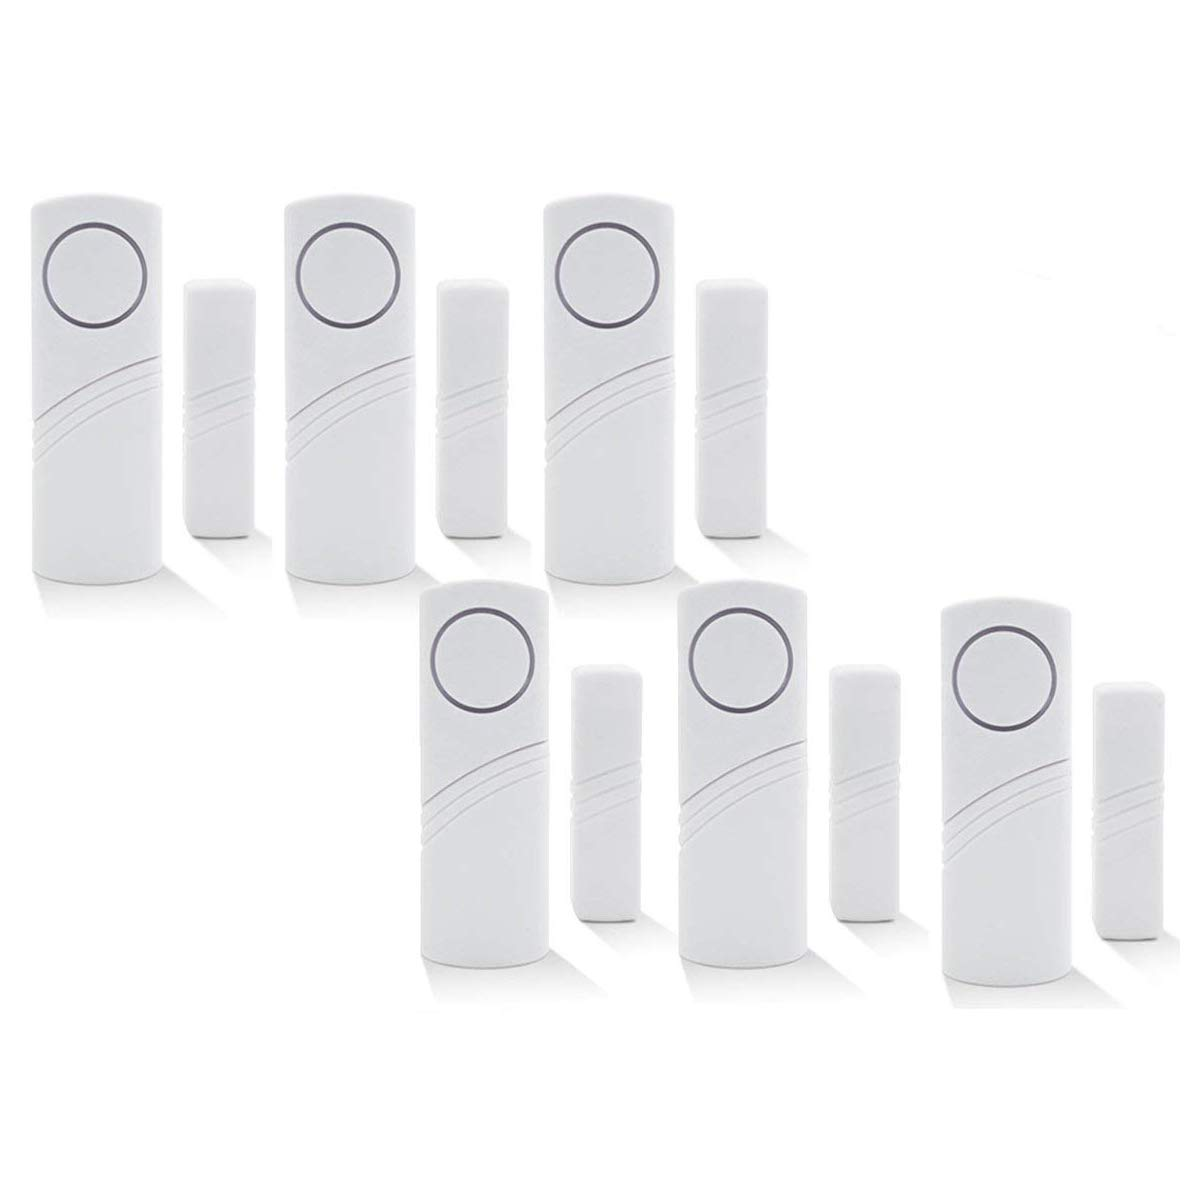 Caravans Sheds Guardian Protector Window Glass Vibration Security Burglar Alarm For Homes Magnetic Sensor Wireless Home Security Alarm System Diy Kit Price Xes Cars Set Of 6 Motorhomes Door Window Sensors